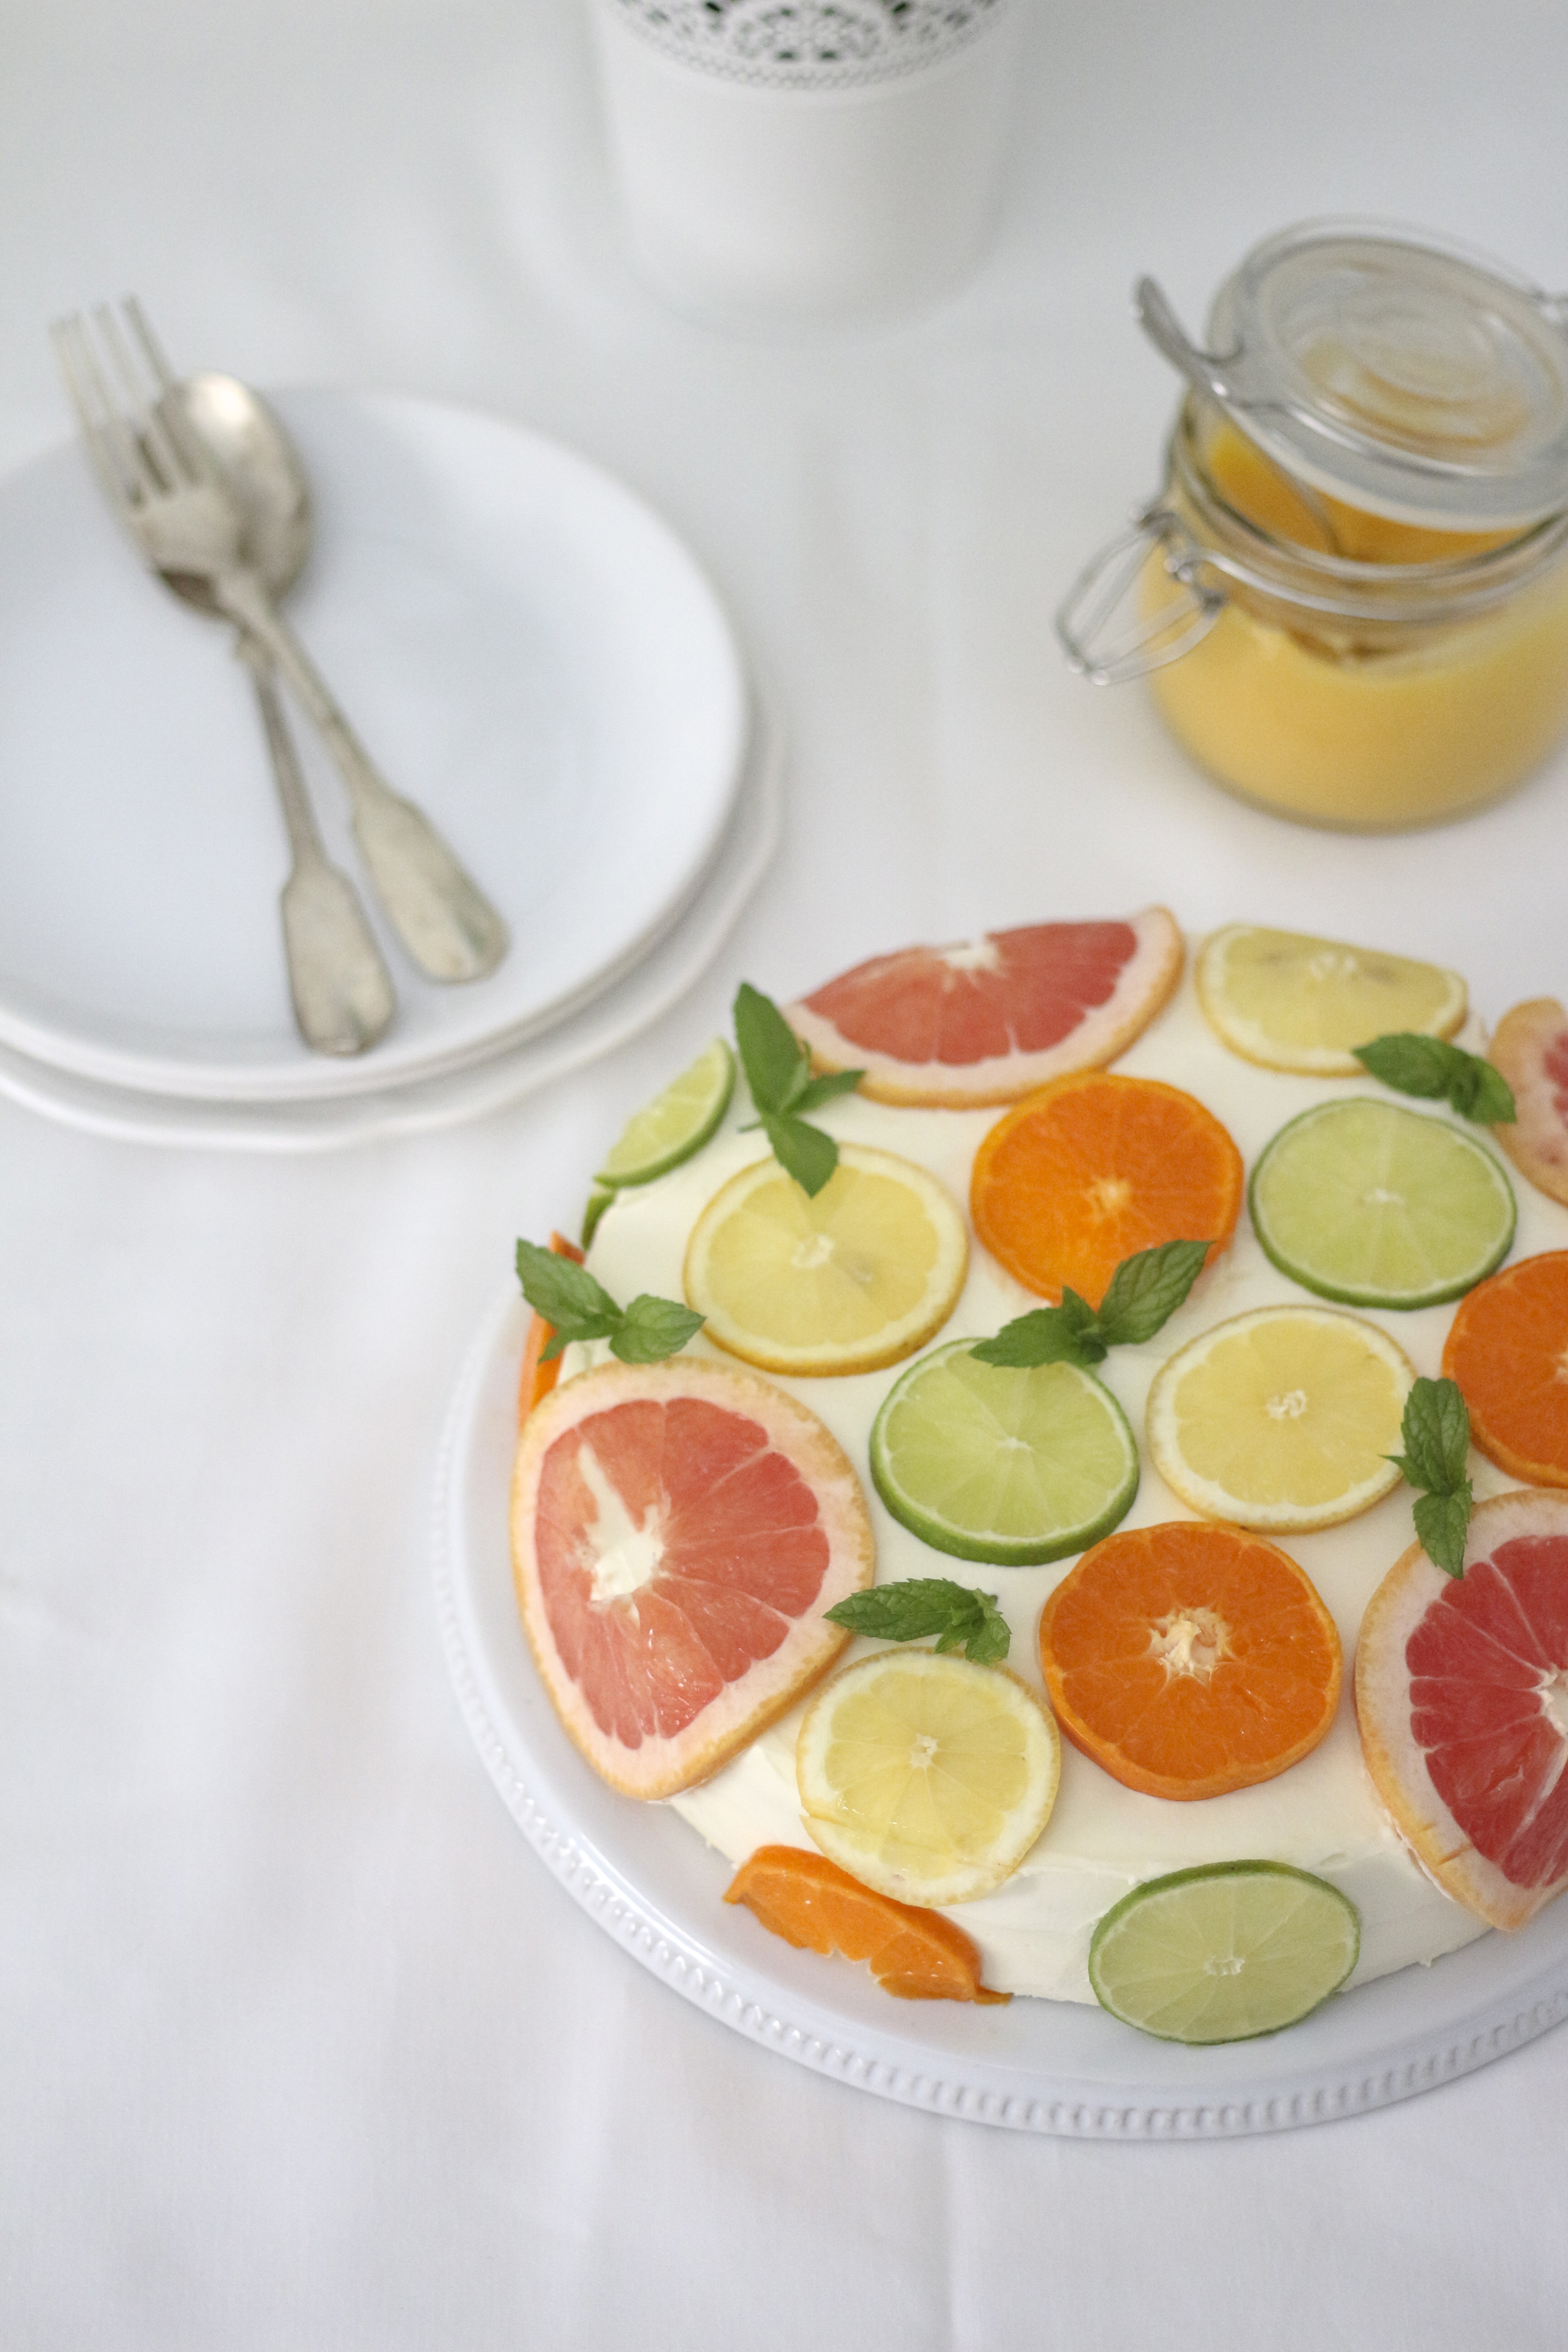 Coconut Cake with Citrus2